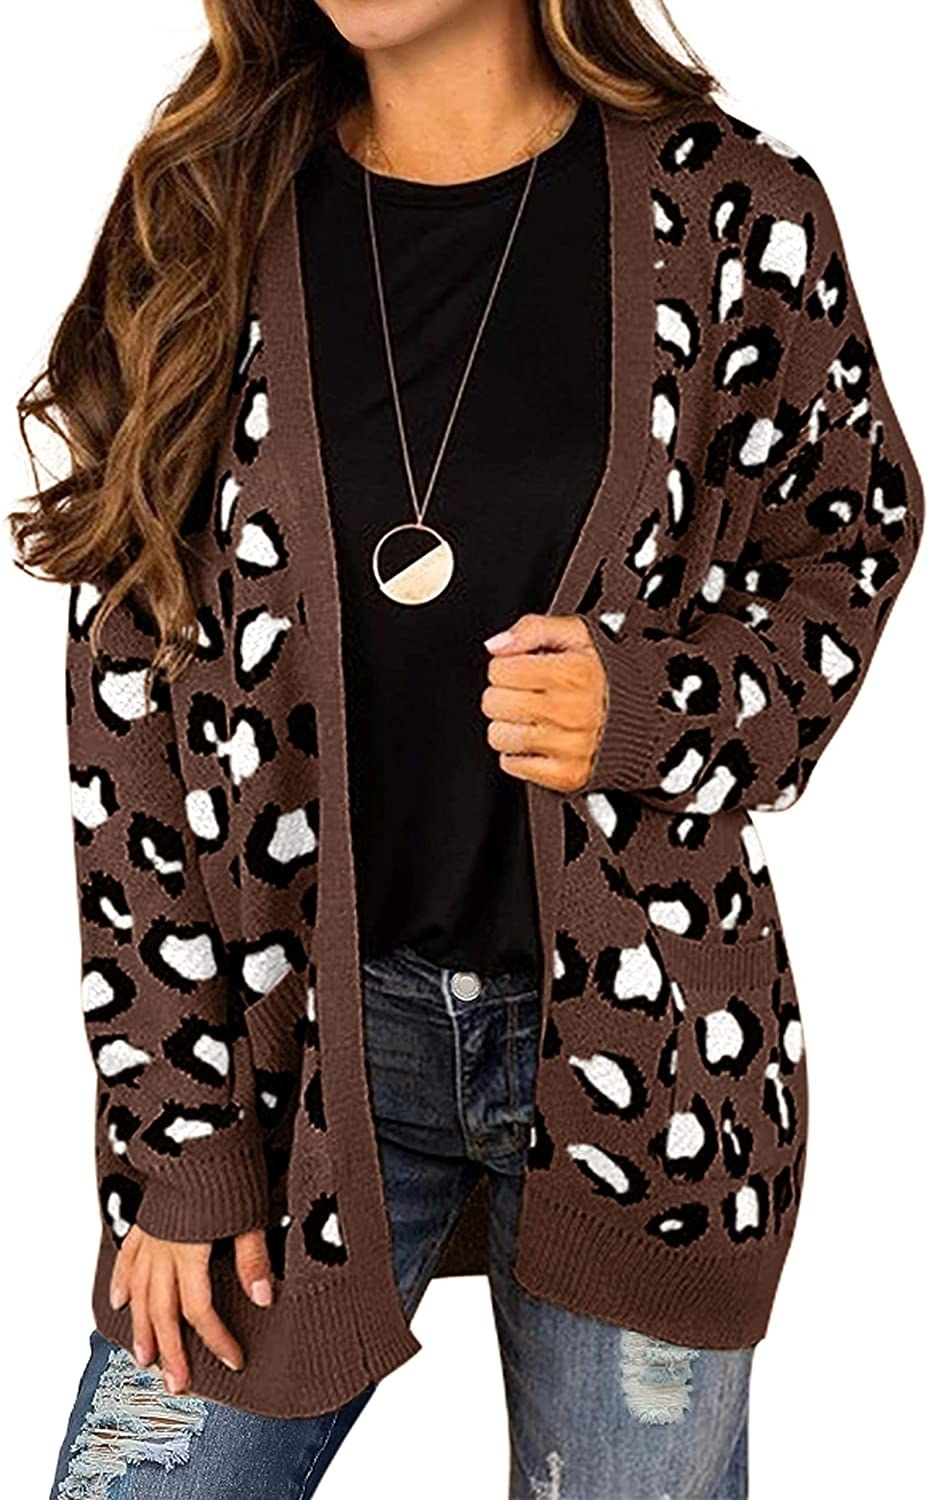 Model in the brown, black, and white leopard print sweater